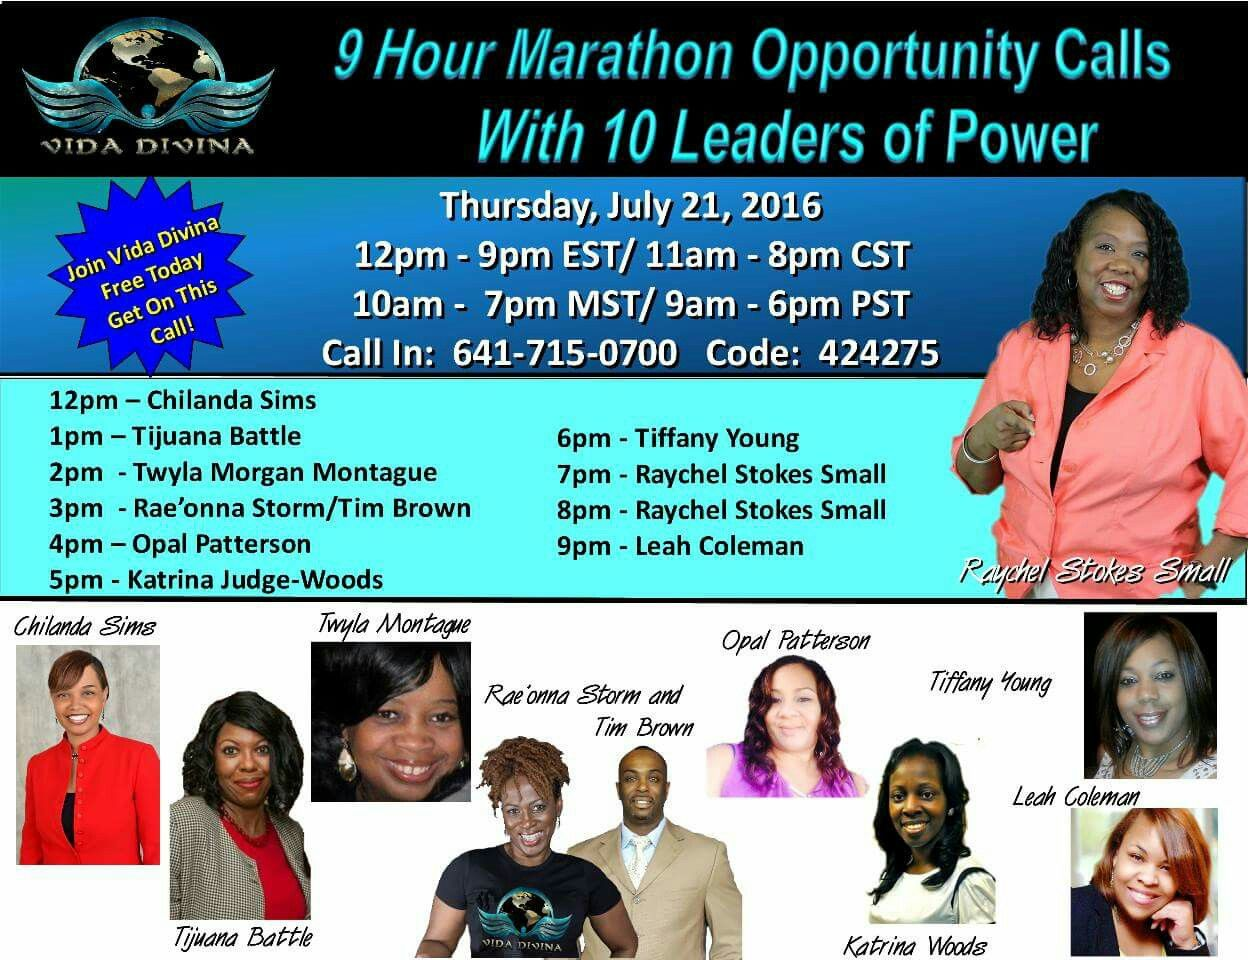 Get on this 9 hour Marathon Opportunity Call Thursday July 21,2016 starting @ 12 pm!! #VidaDivina